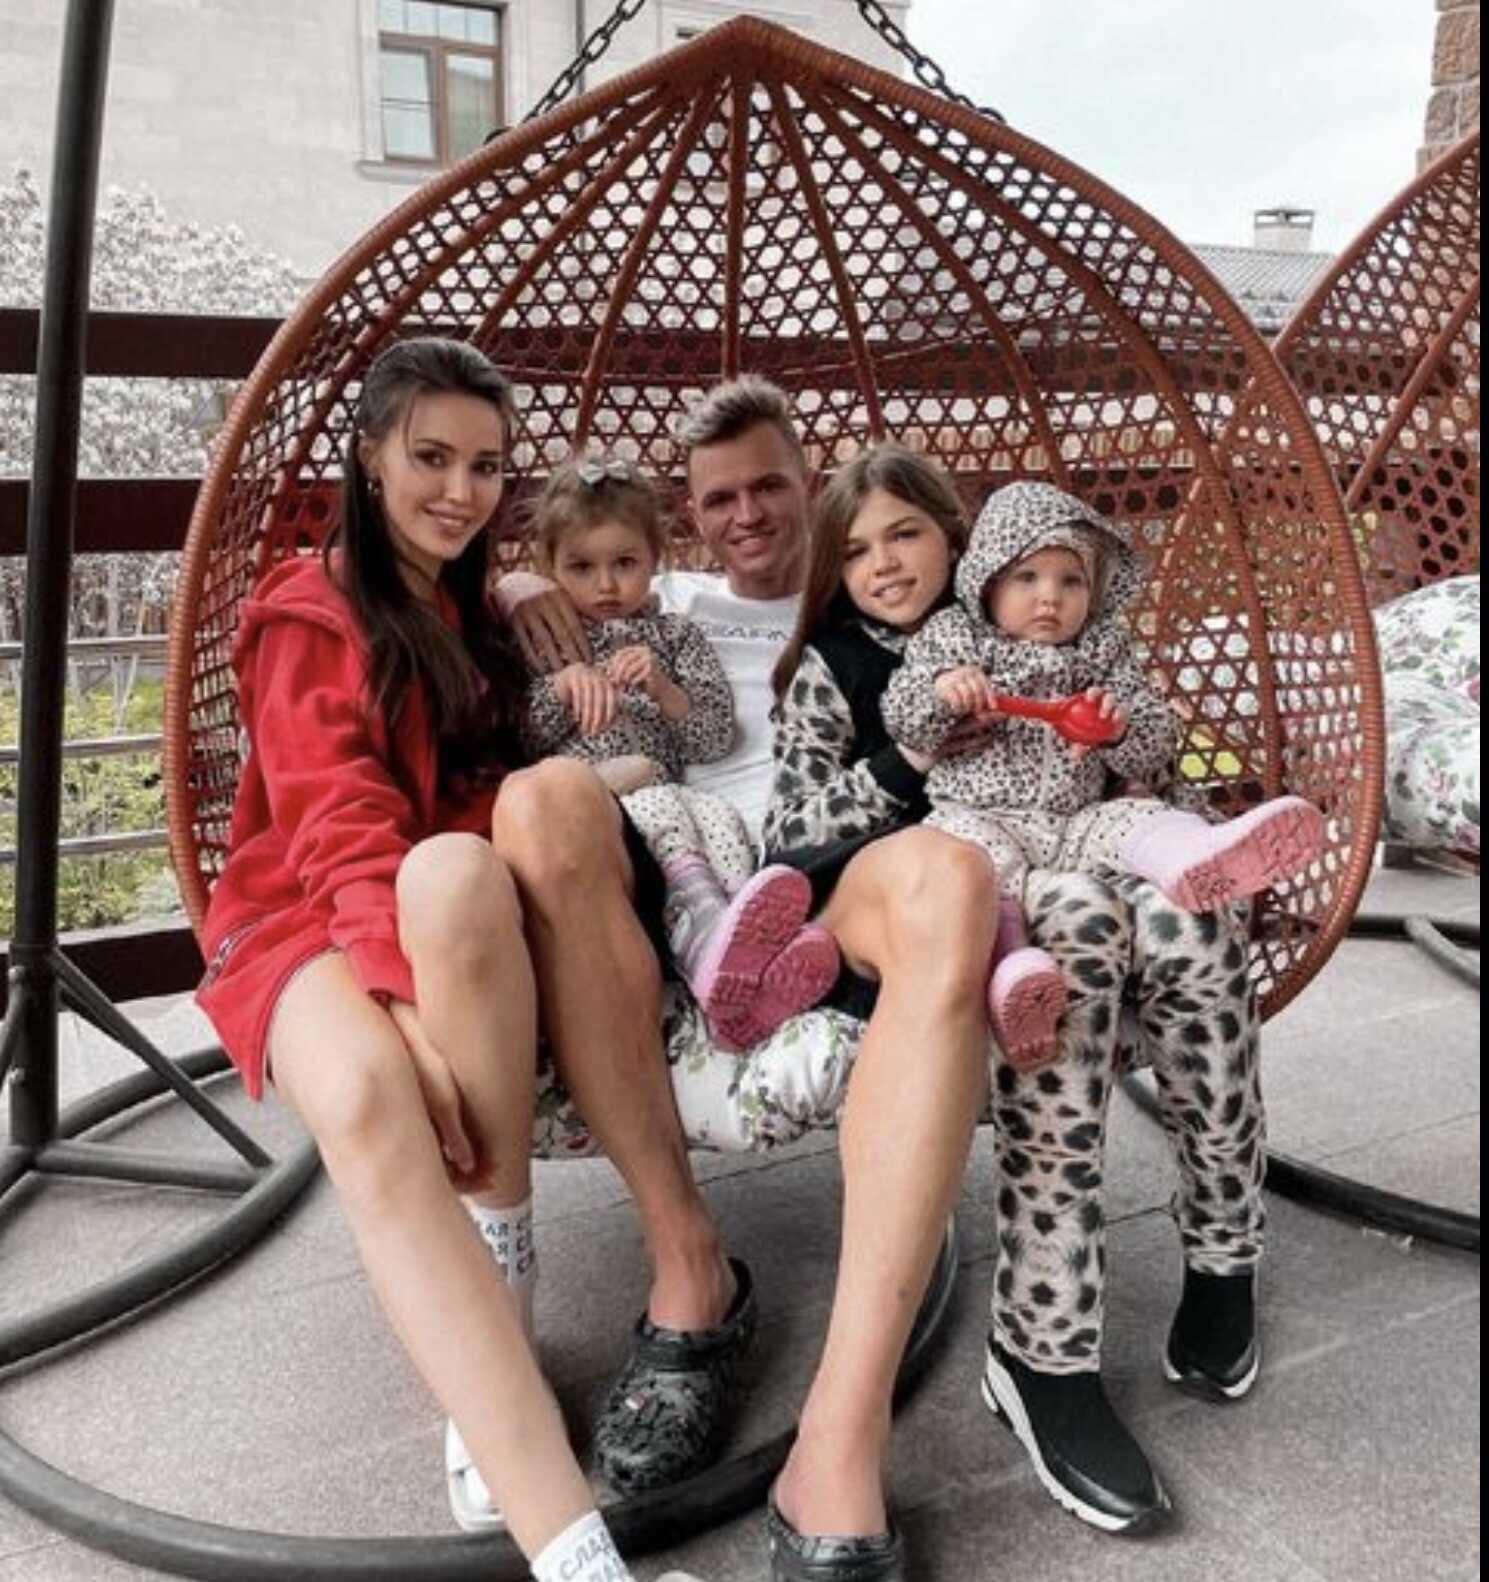 The eldest daughter of Dmitry Tarasov first came to visit him and Anastasia Kostenko